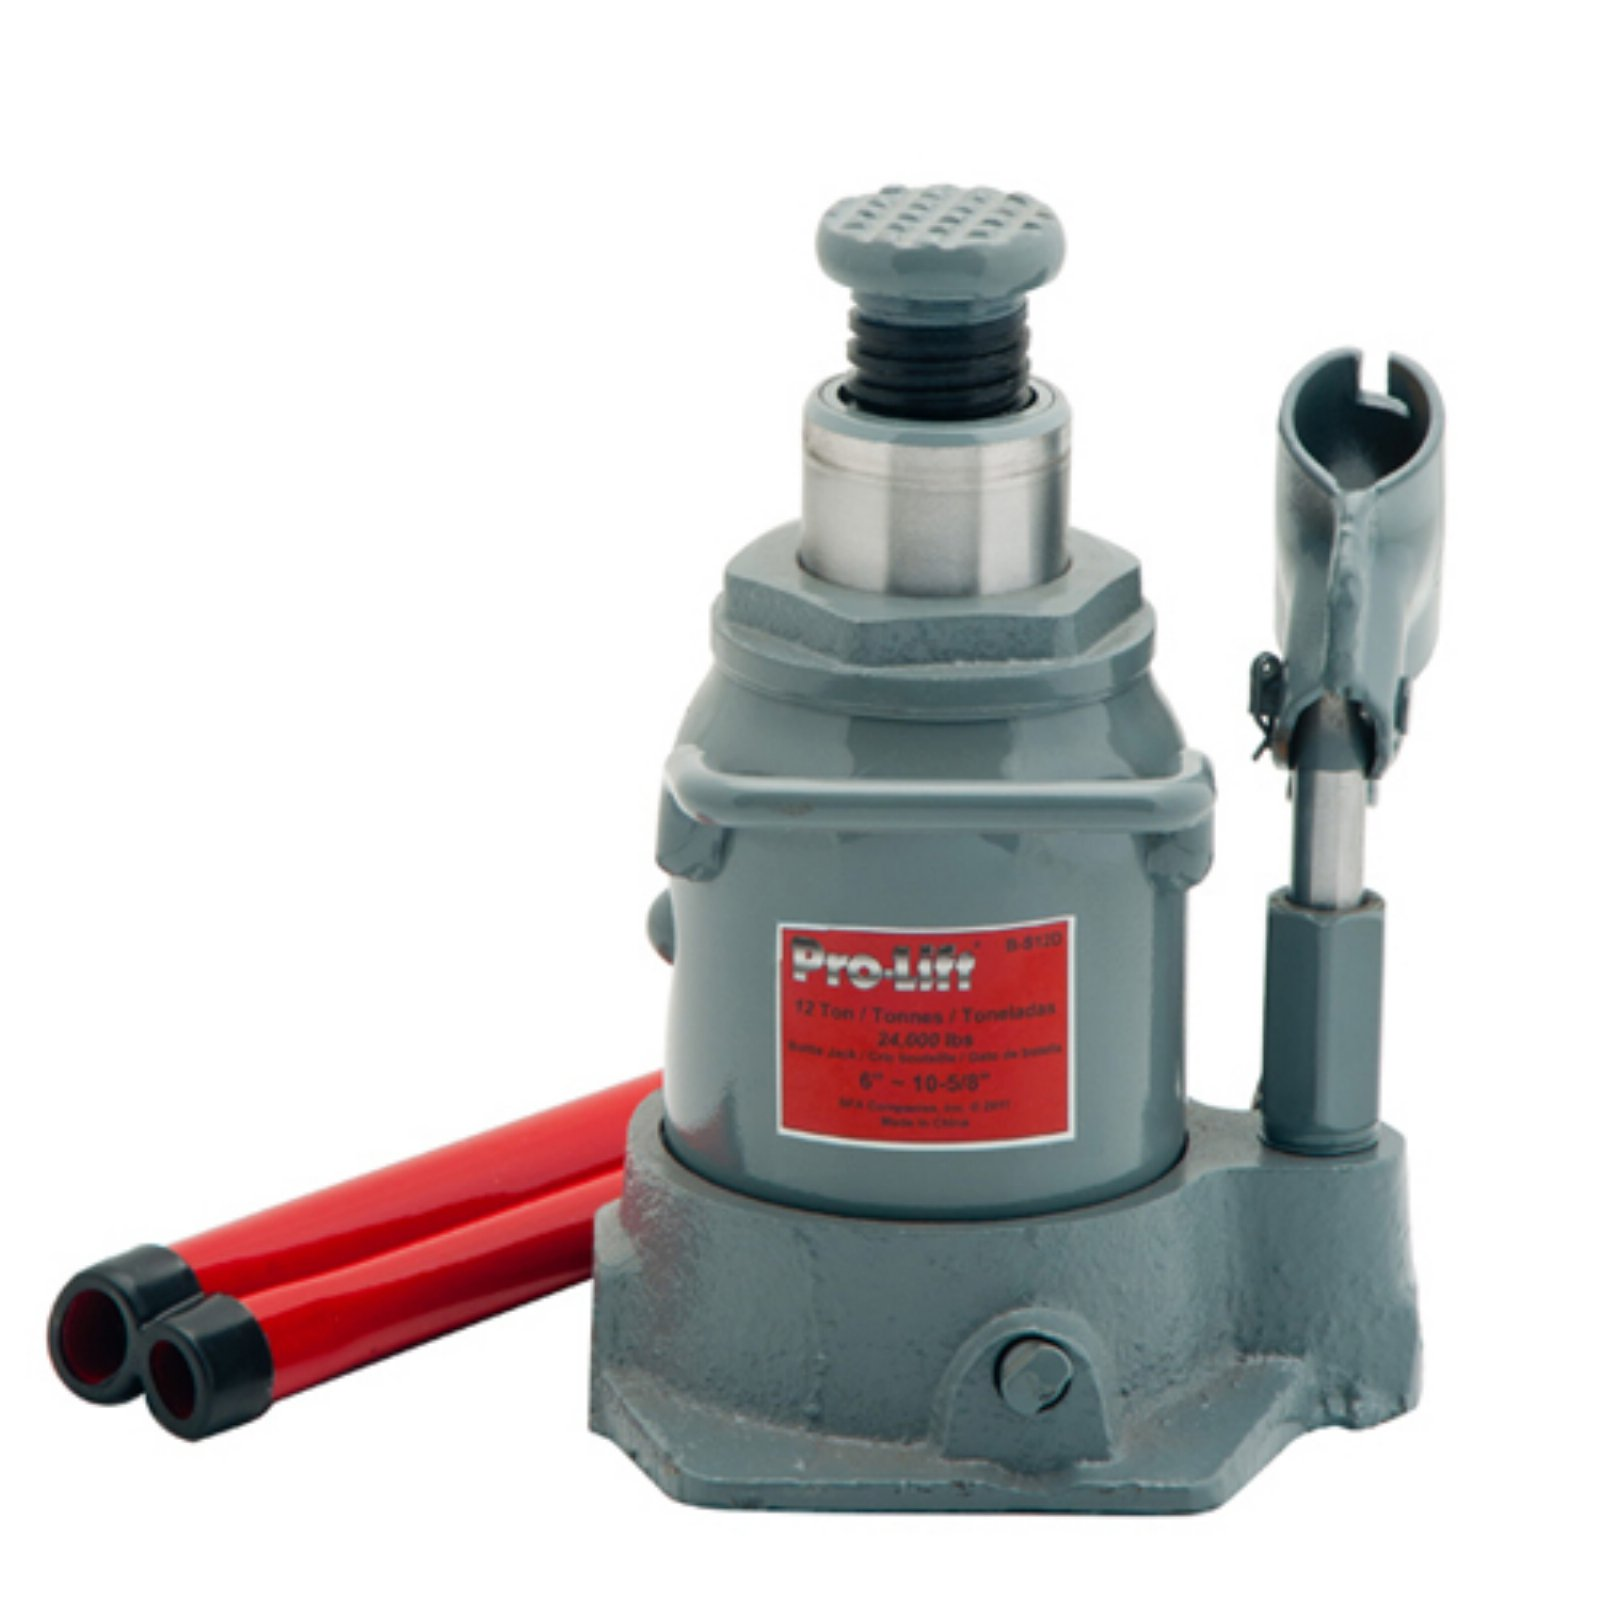 Pro-Lift B-S20D Grey Hydraulic Bottle Jack, 20 Ton Capacity